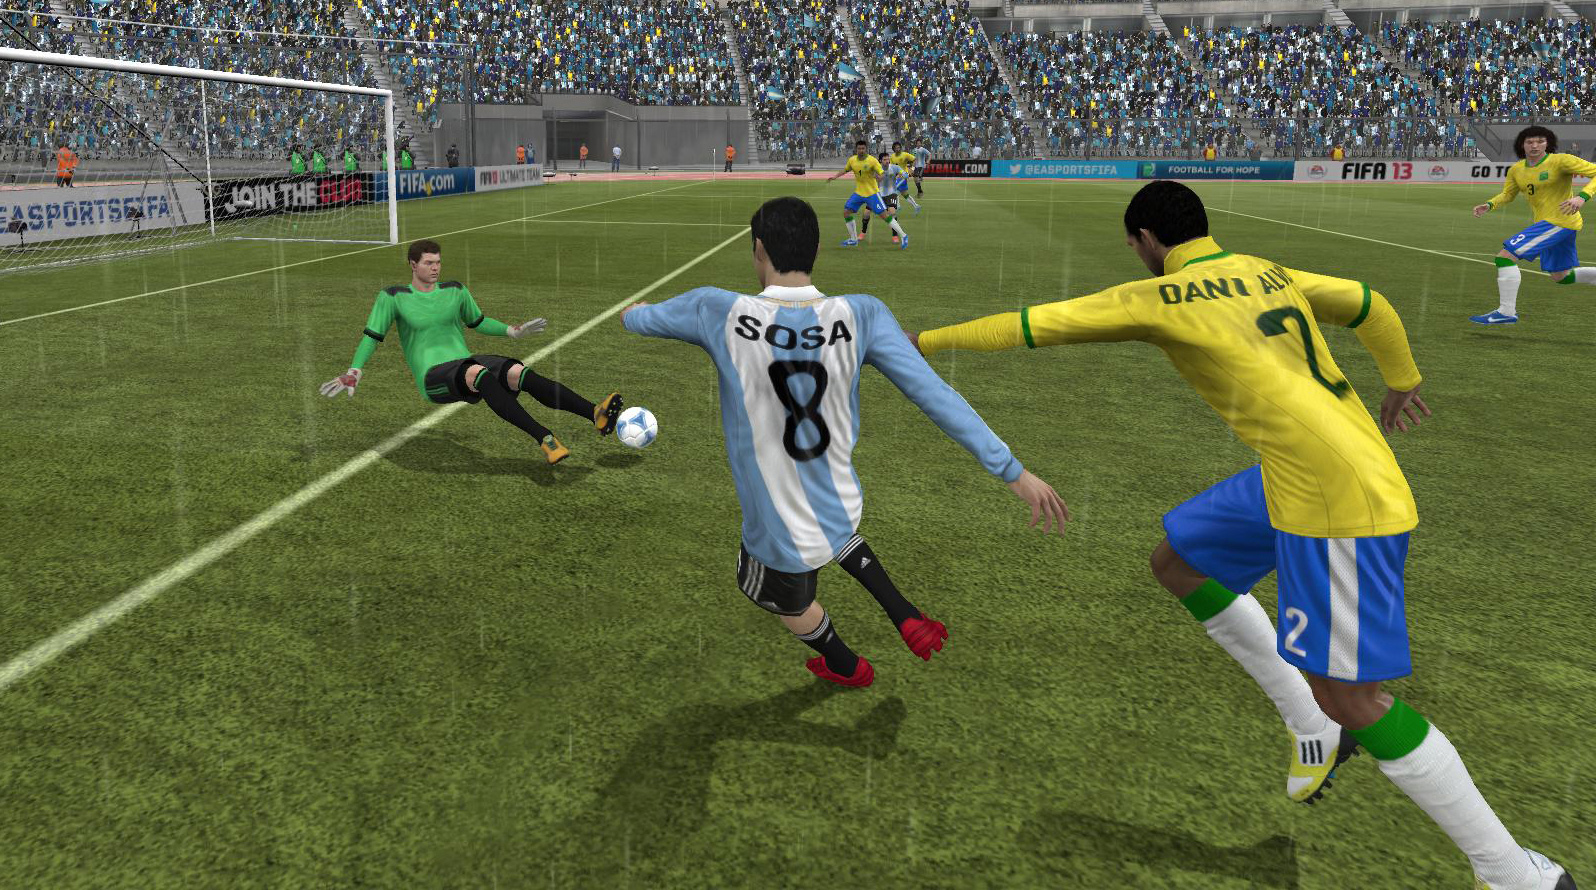 Fifa 08 PC game Free Download Full Version Working